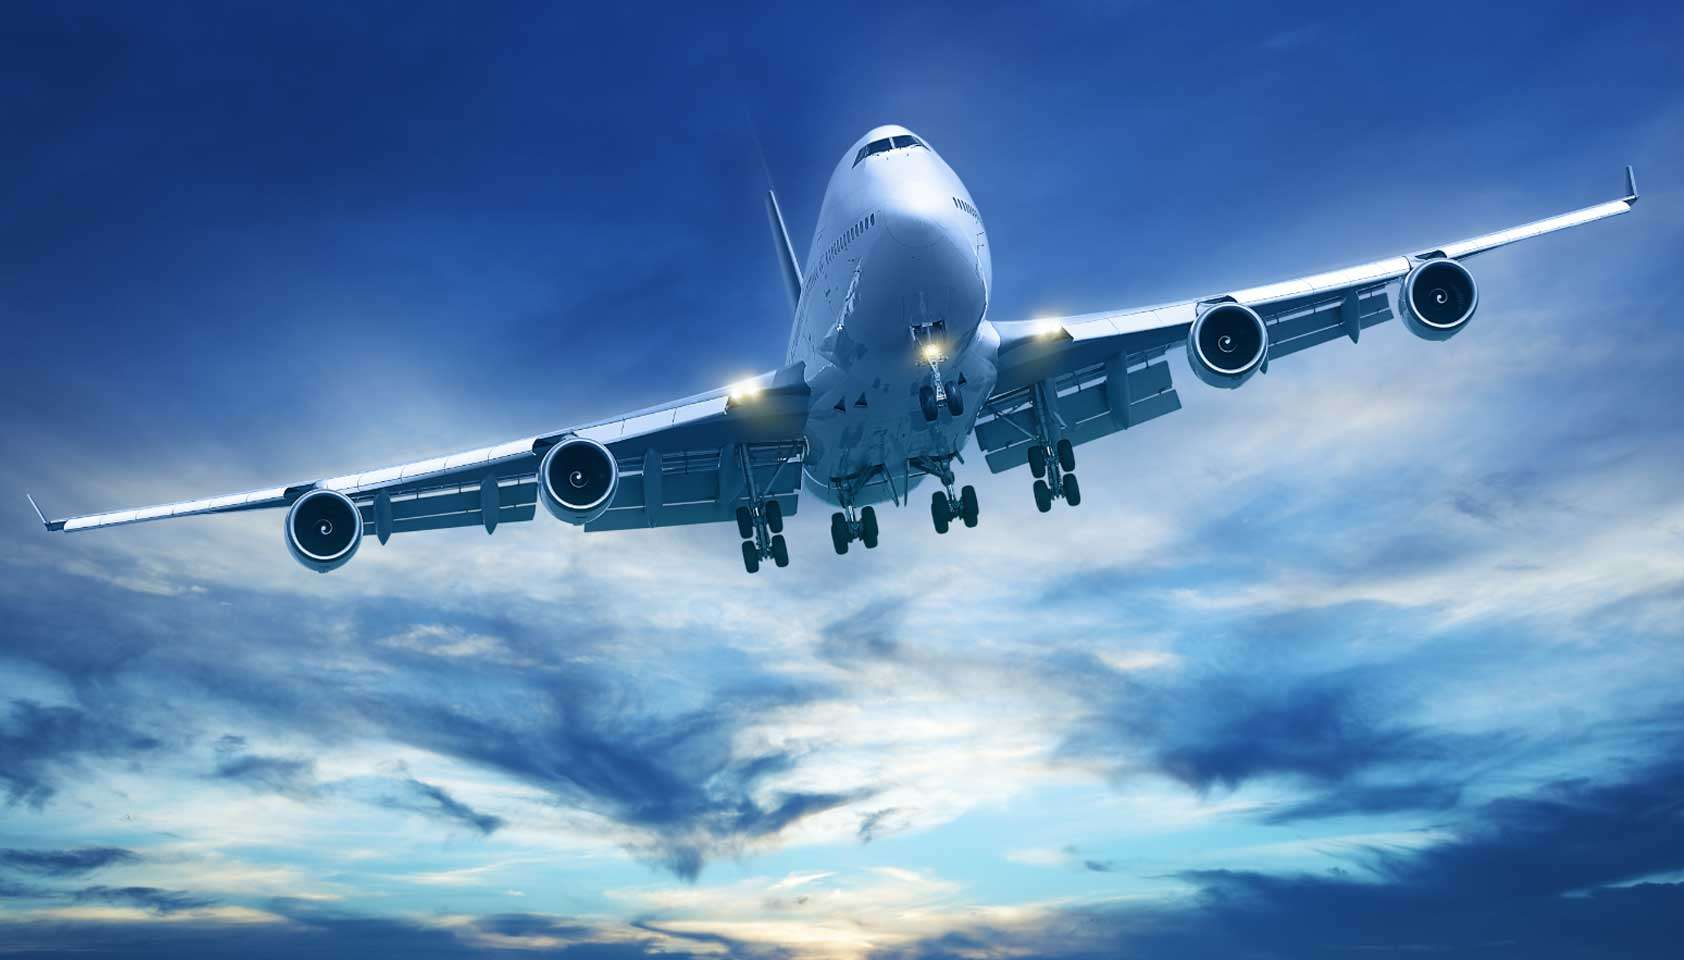 Flying is actually the safest way to travel in the world